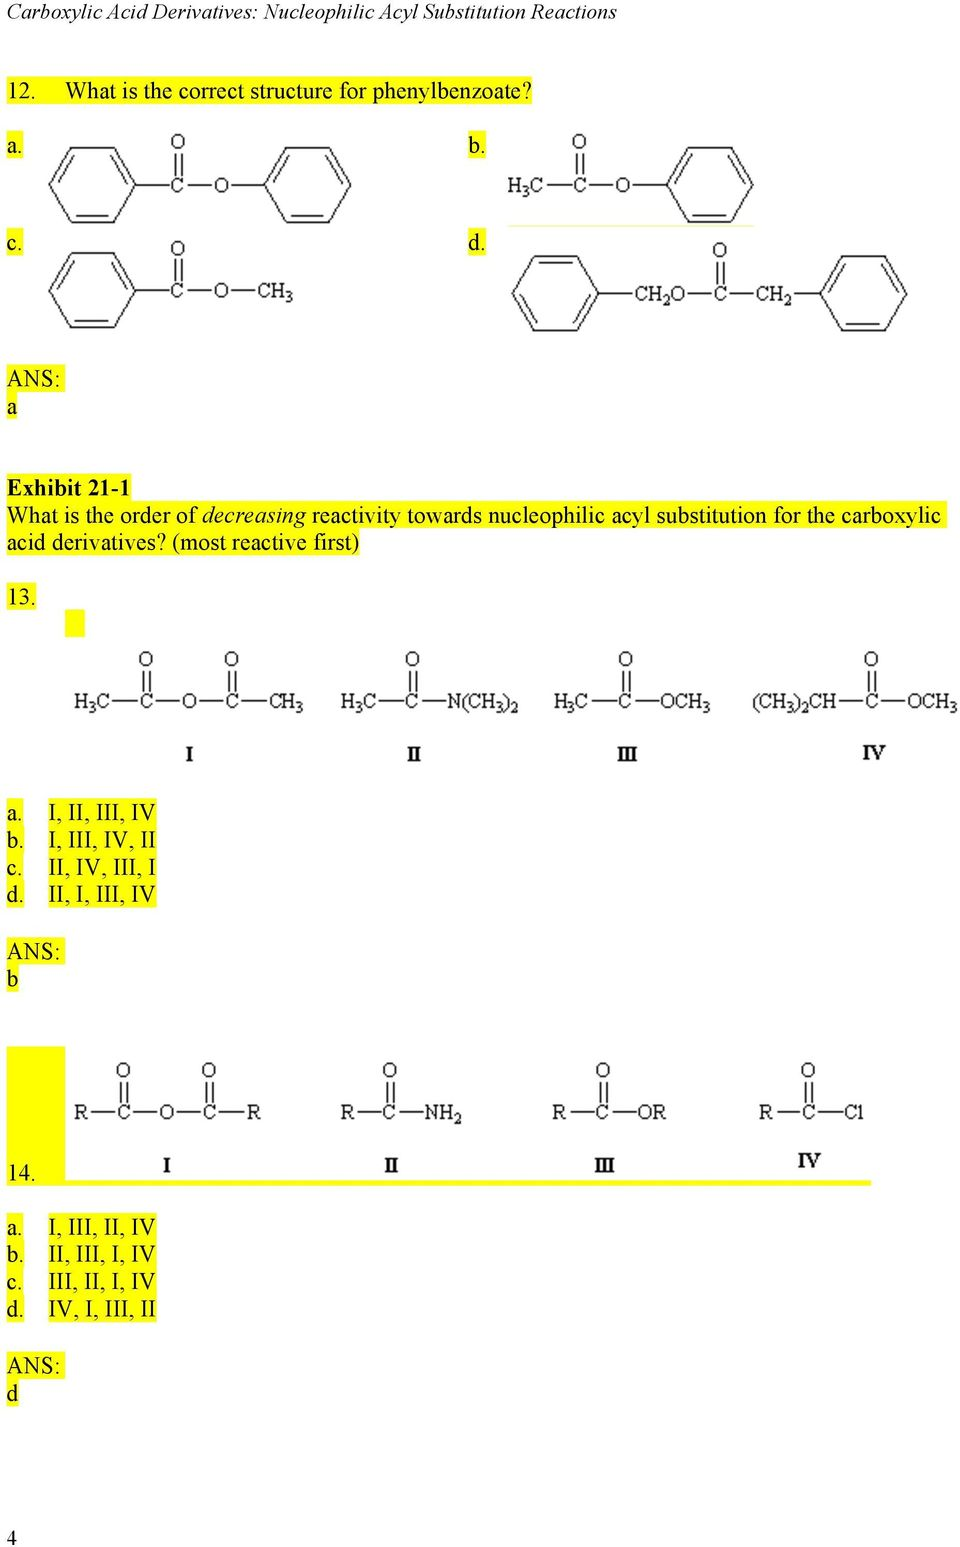 a Exhibit 21-1 What is the order of decreasing reactivity towards nucleophilic acyl substitution for the